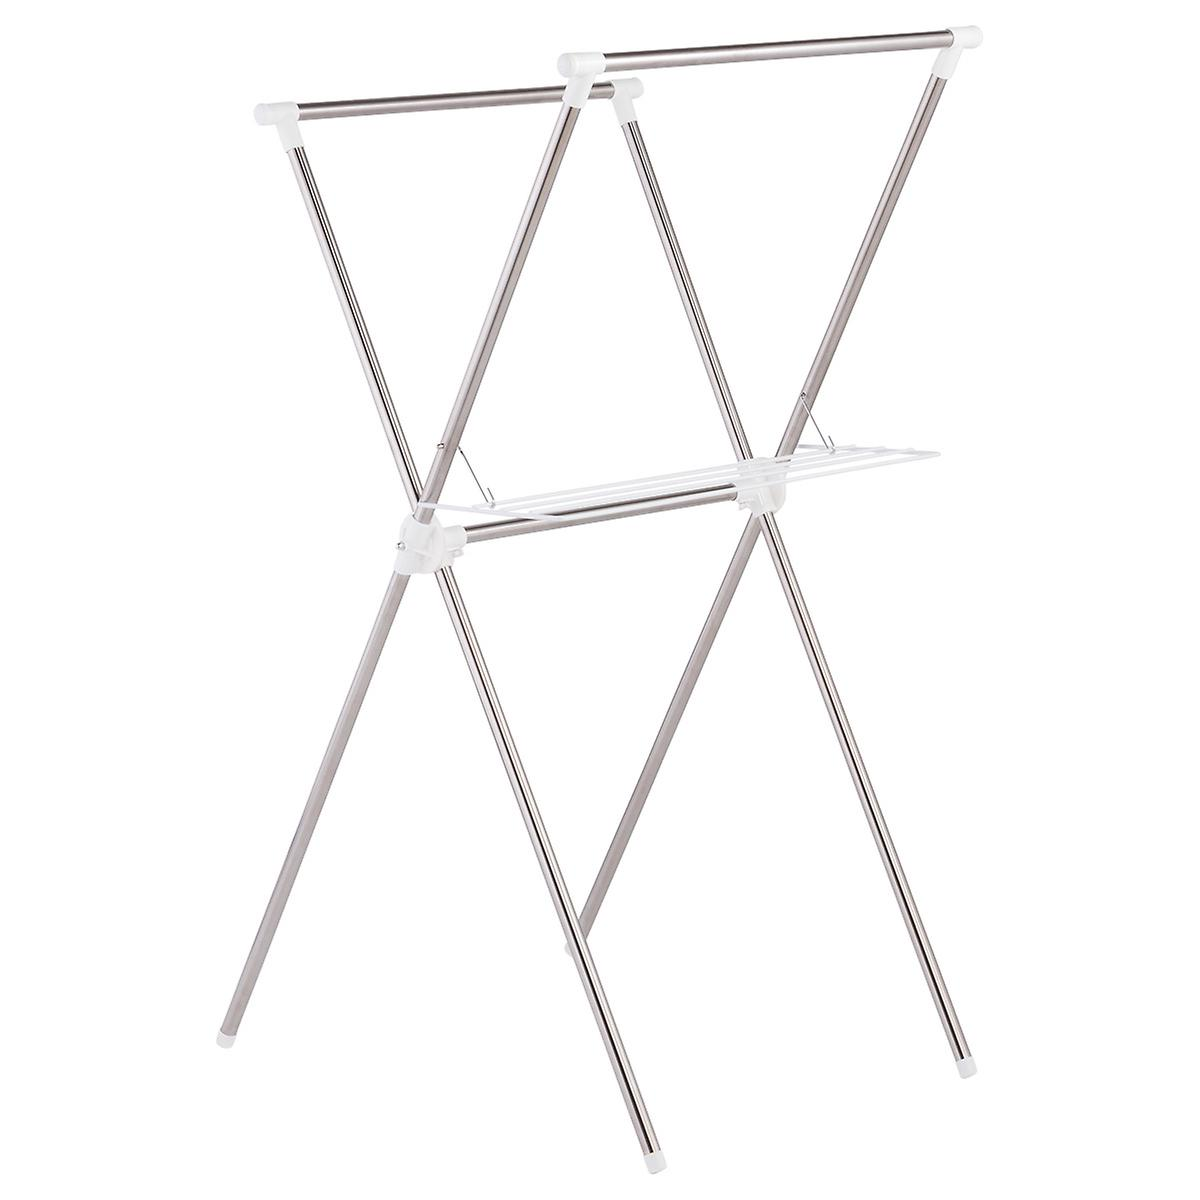 Iris Stainless Steel Folding X-Frame Clothes Drying Rack | The ...